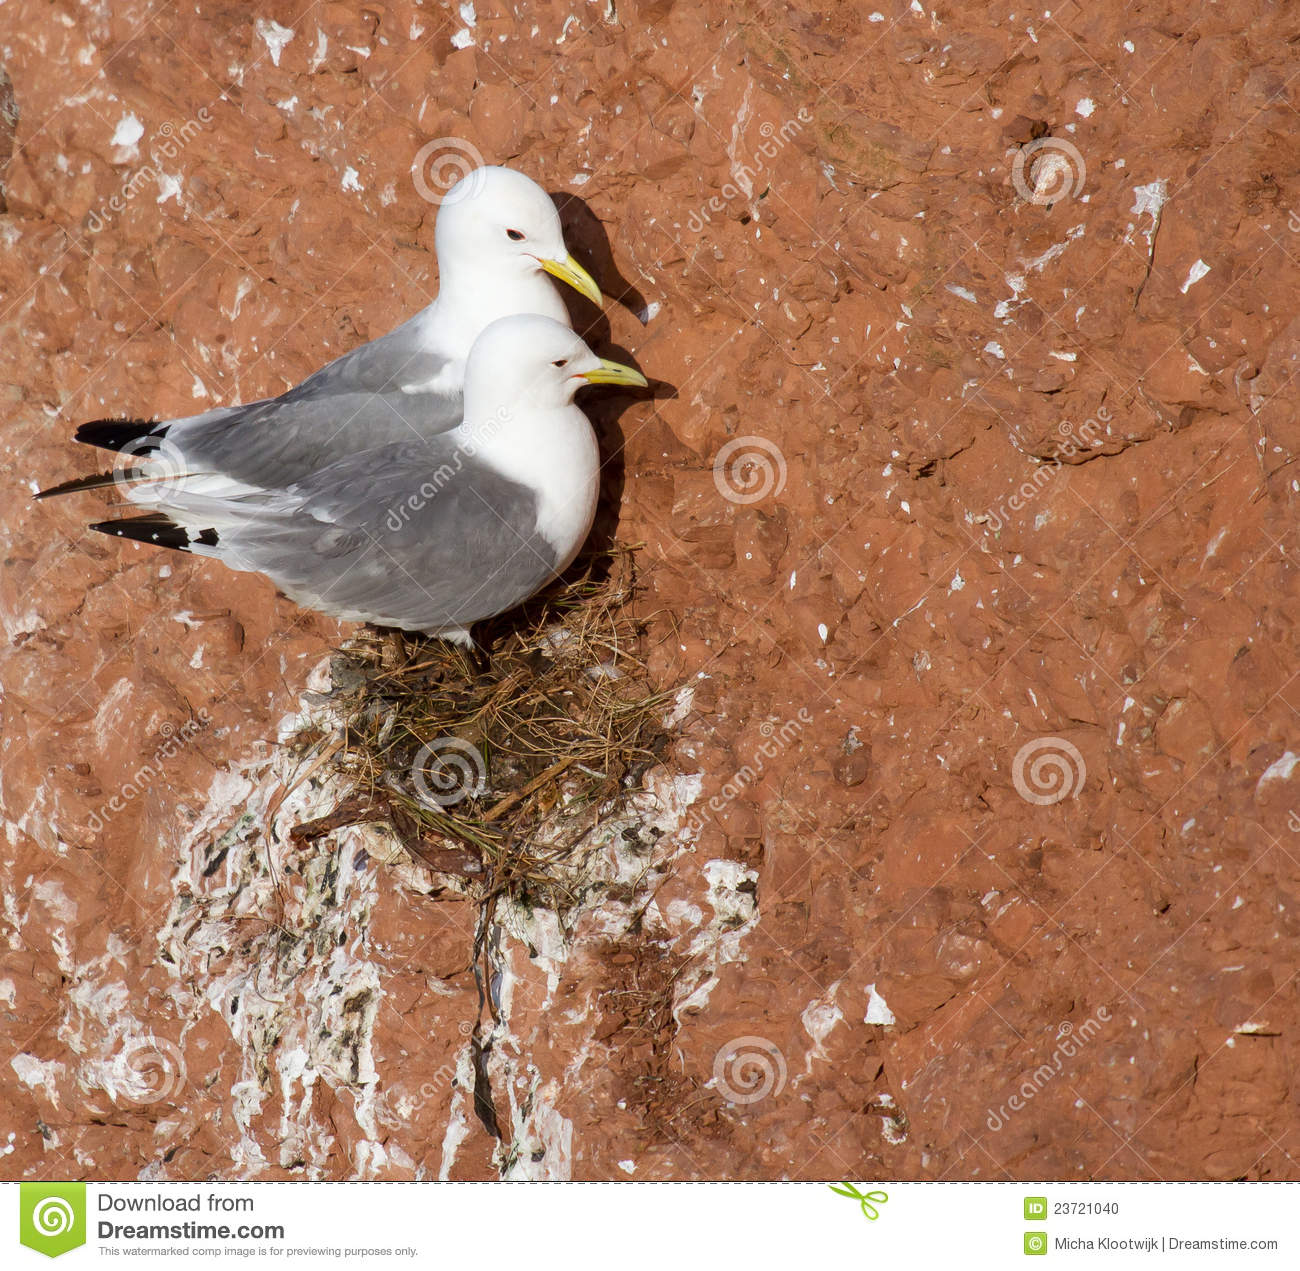 A pair of seagulls nesting